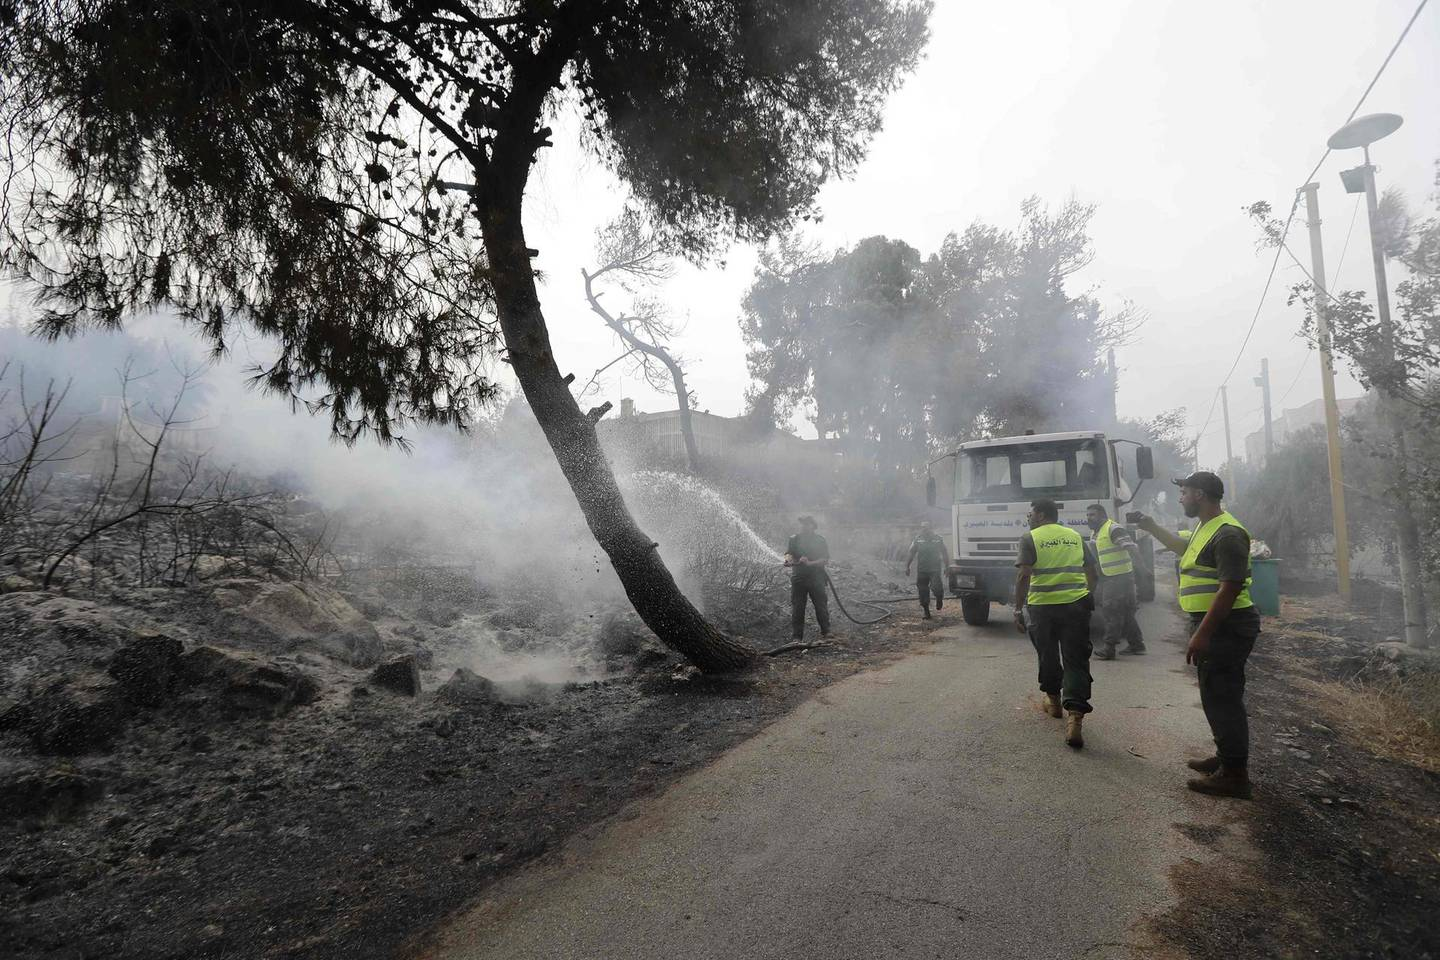 Firefighters extinguish flames in a  forest near the village of Meshref in Lebanon's Shouf mountains, southeast of the capital Beirut, on October 15, 2019. Flames devoured large swaths of land in several Lebanese and Syrian regions. The outbreak coincided with high temperatures and strong winds, according to the official media in both countries. / AFP / JOSEPH EID